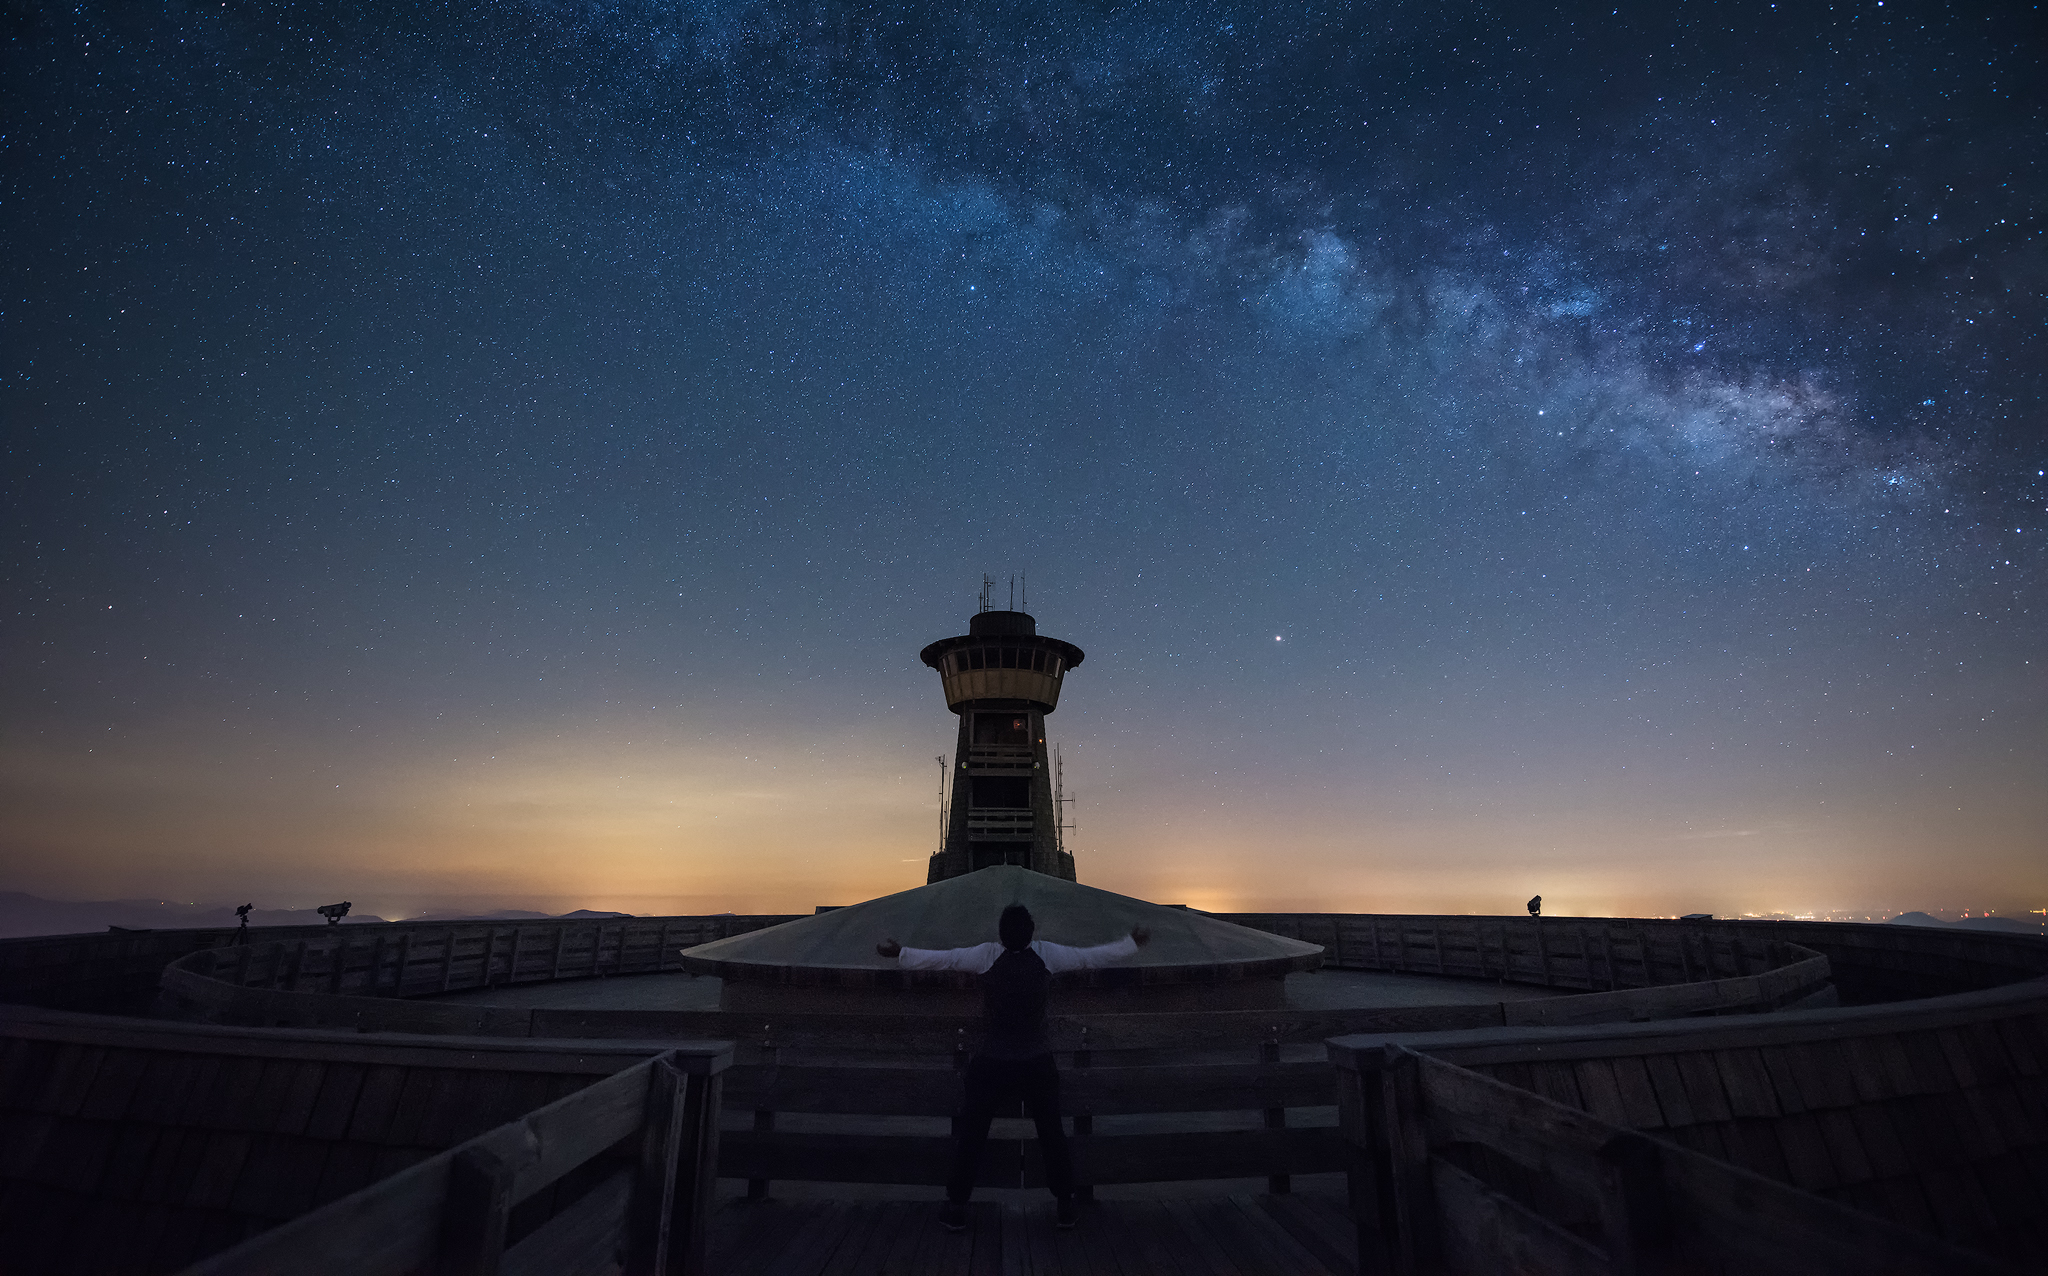 Another day in the milky way - Brasstown Bald, Georgia